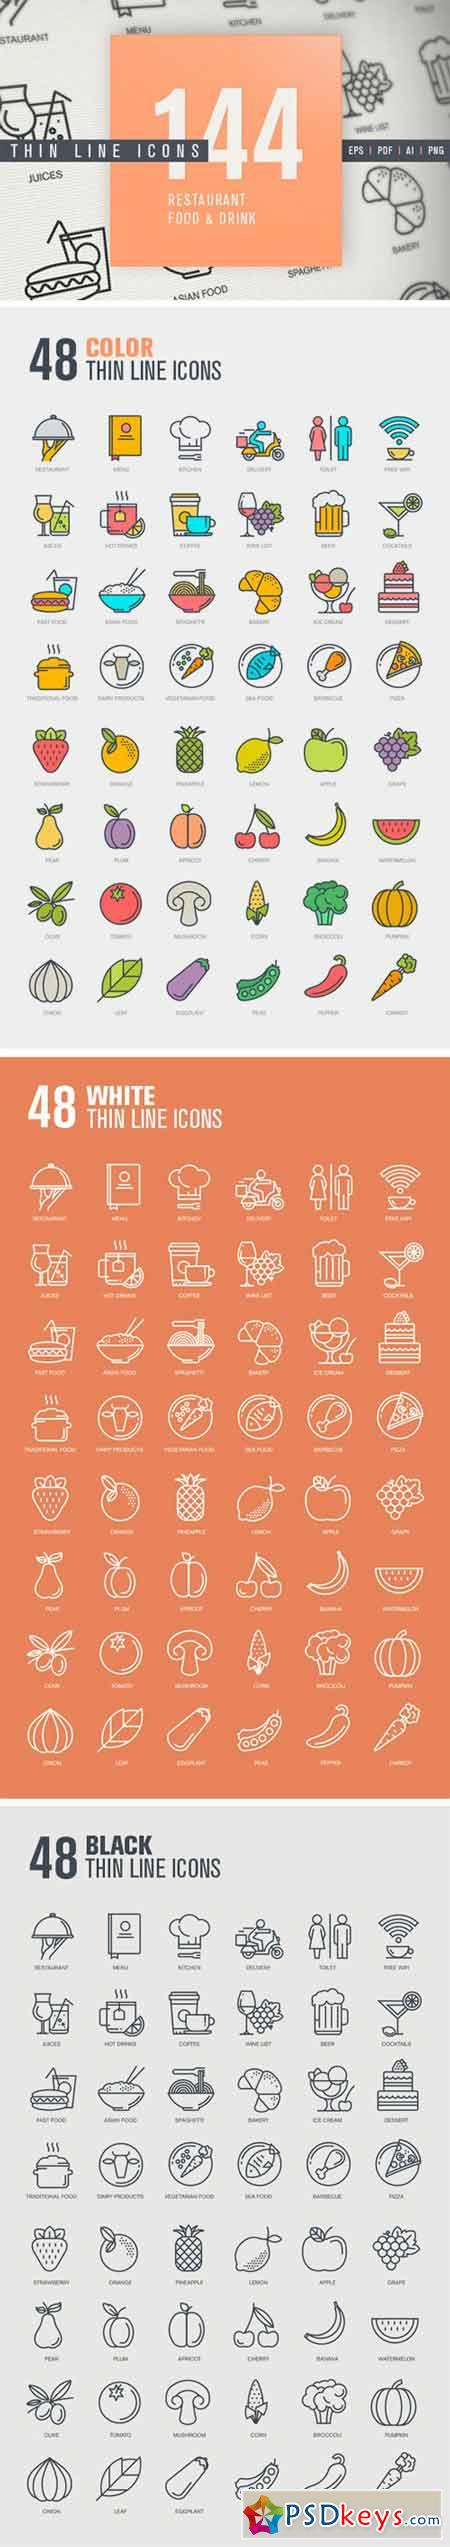 Thin Line Icons for Food & Drink 329510